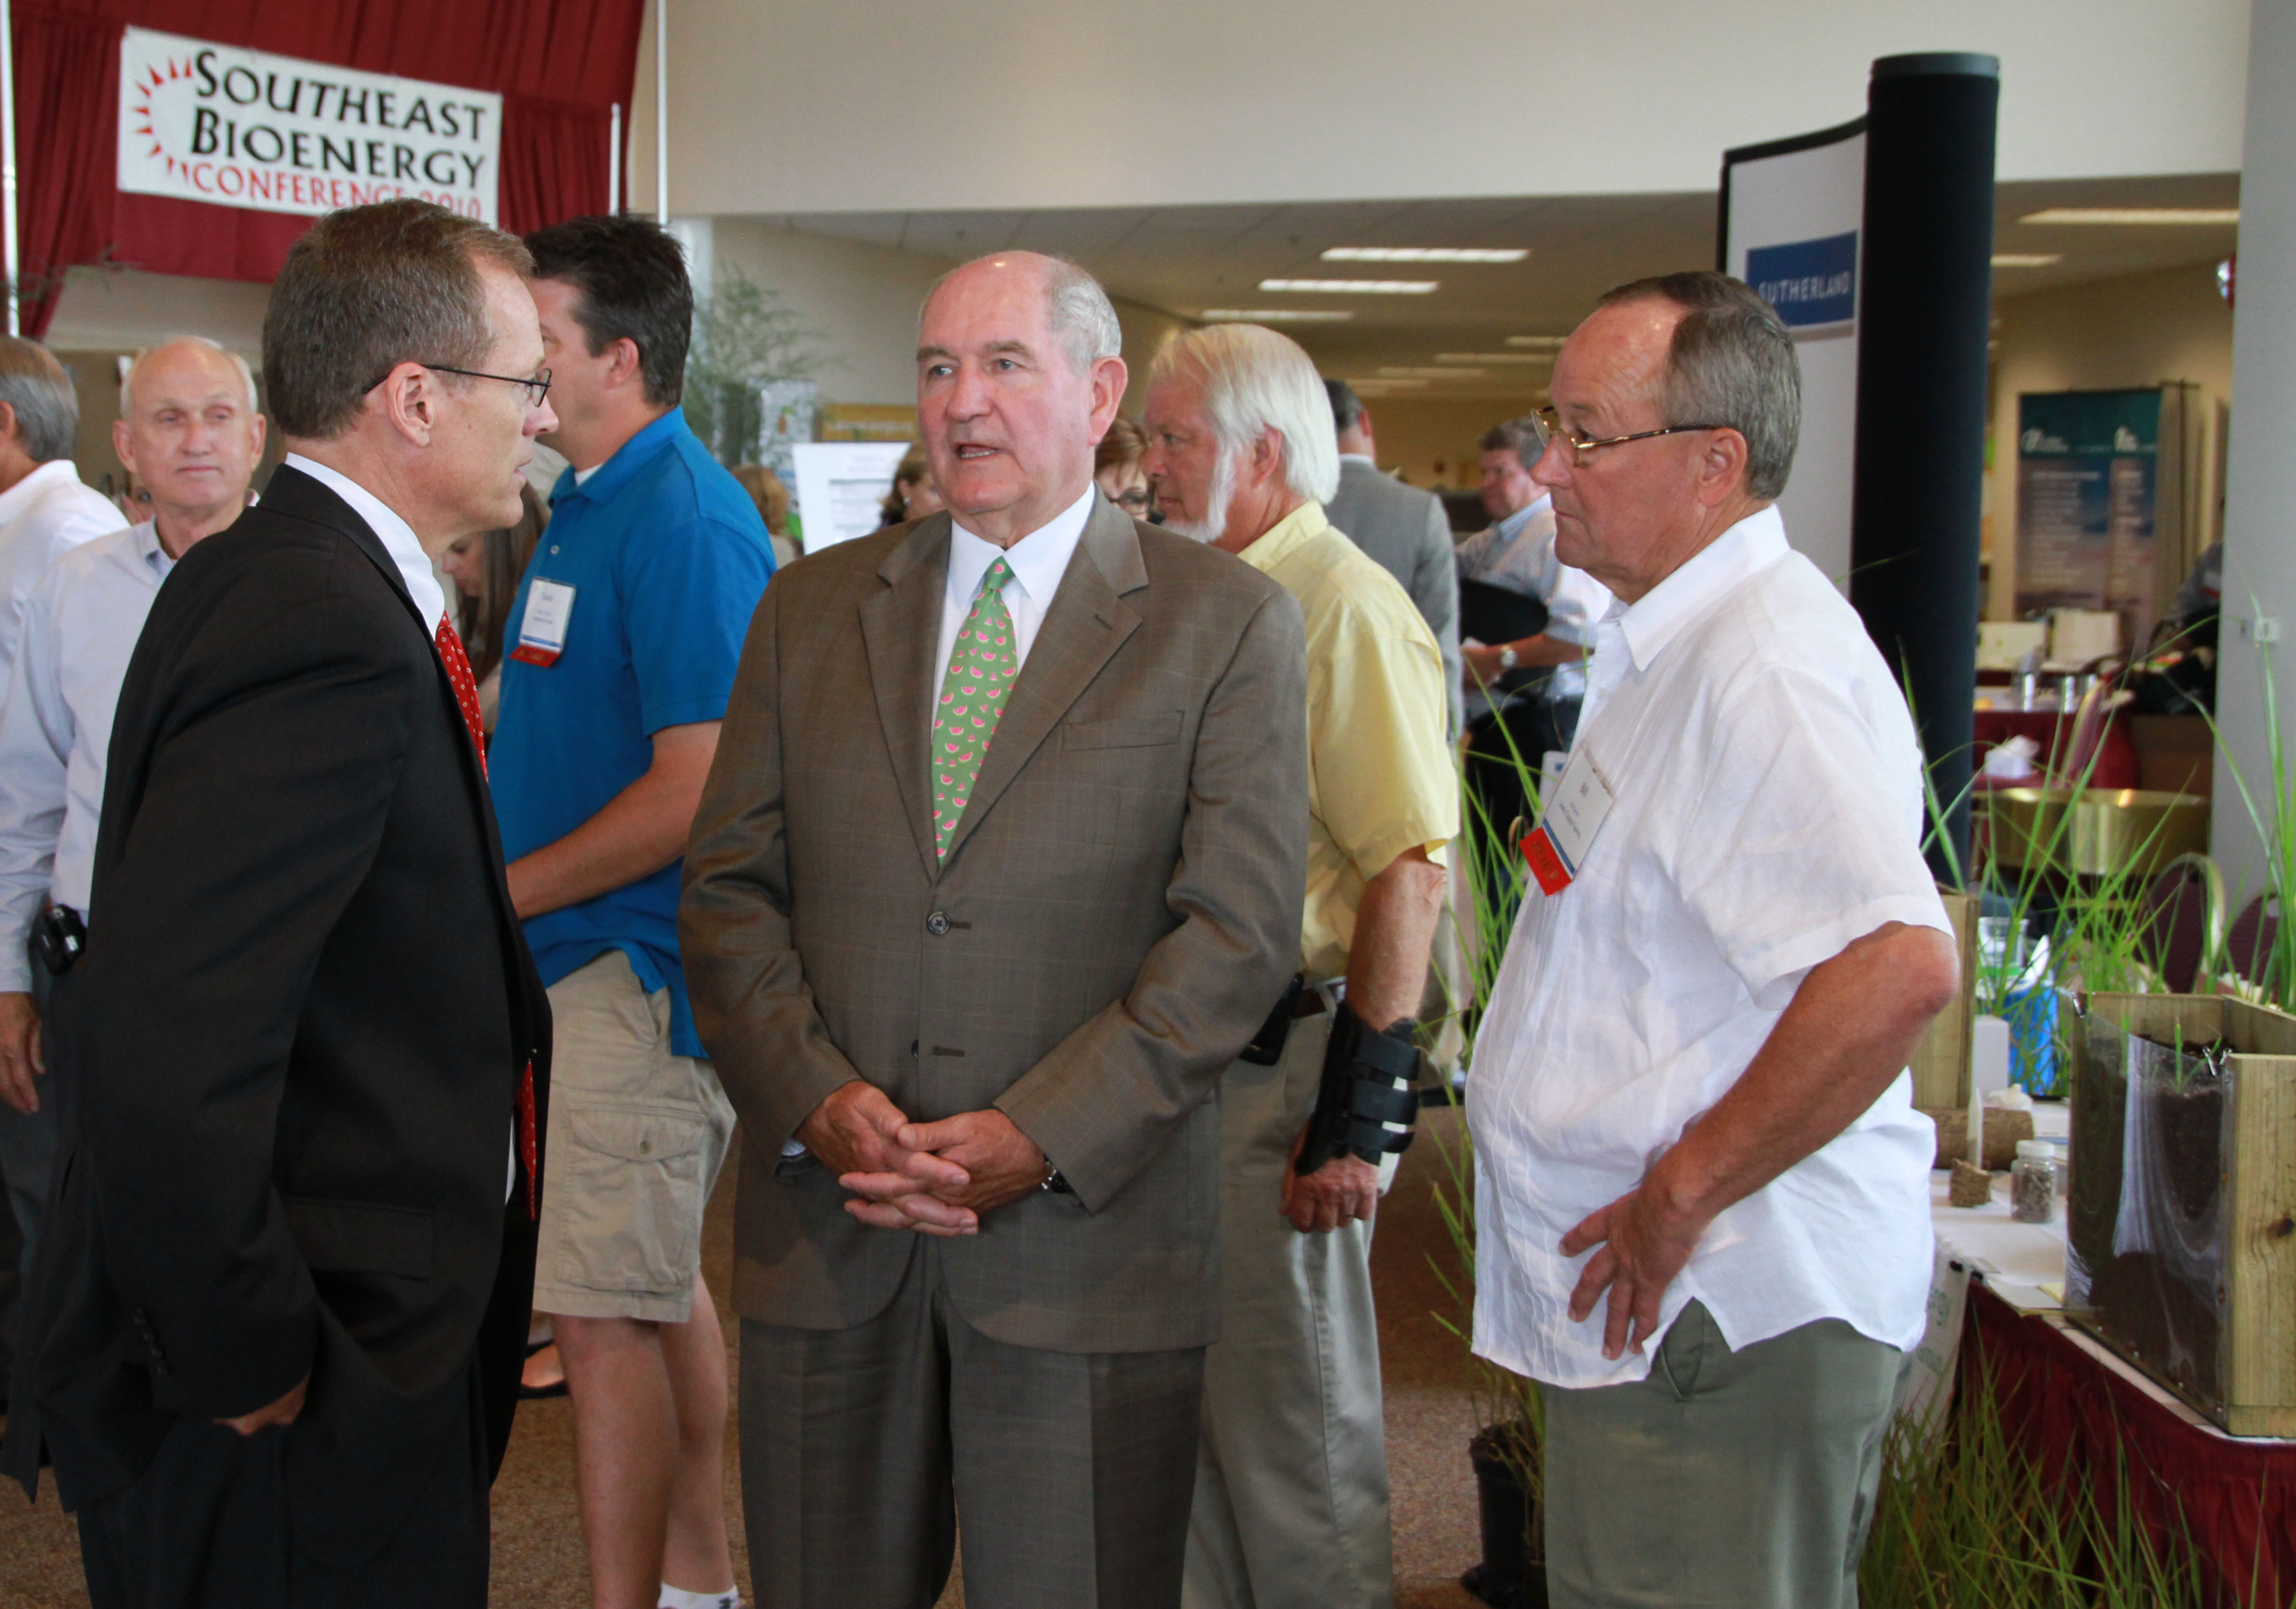 Georgia Gov. Sonny Perdue is shown (center) visiting with U.S. Rep. Jack Kingston (left) and Bill Brim (right) of Lewis Taylor Farms during the 2010 Southeast Bioenergy Conference.